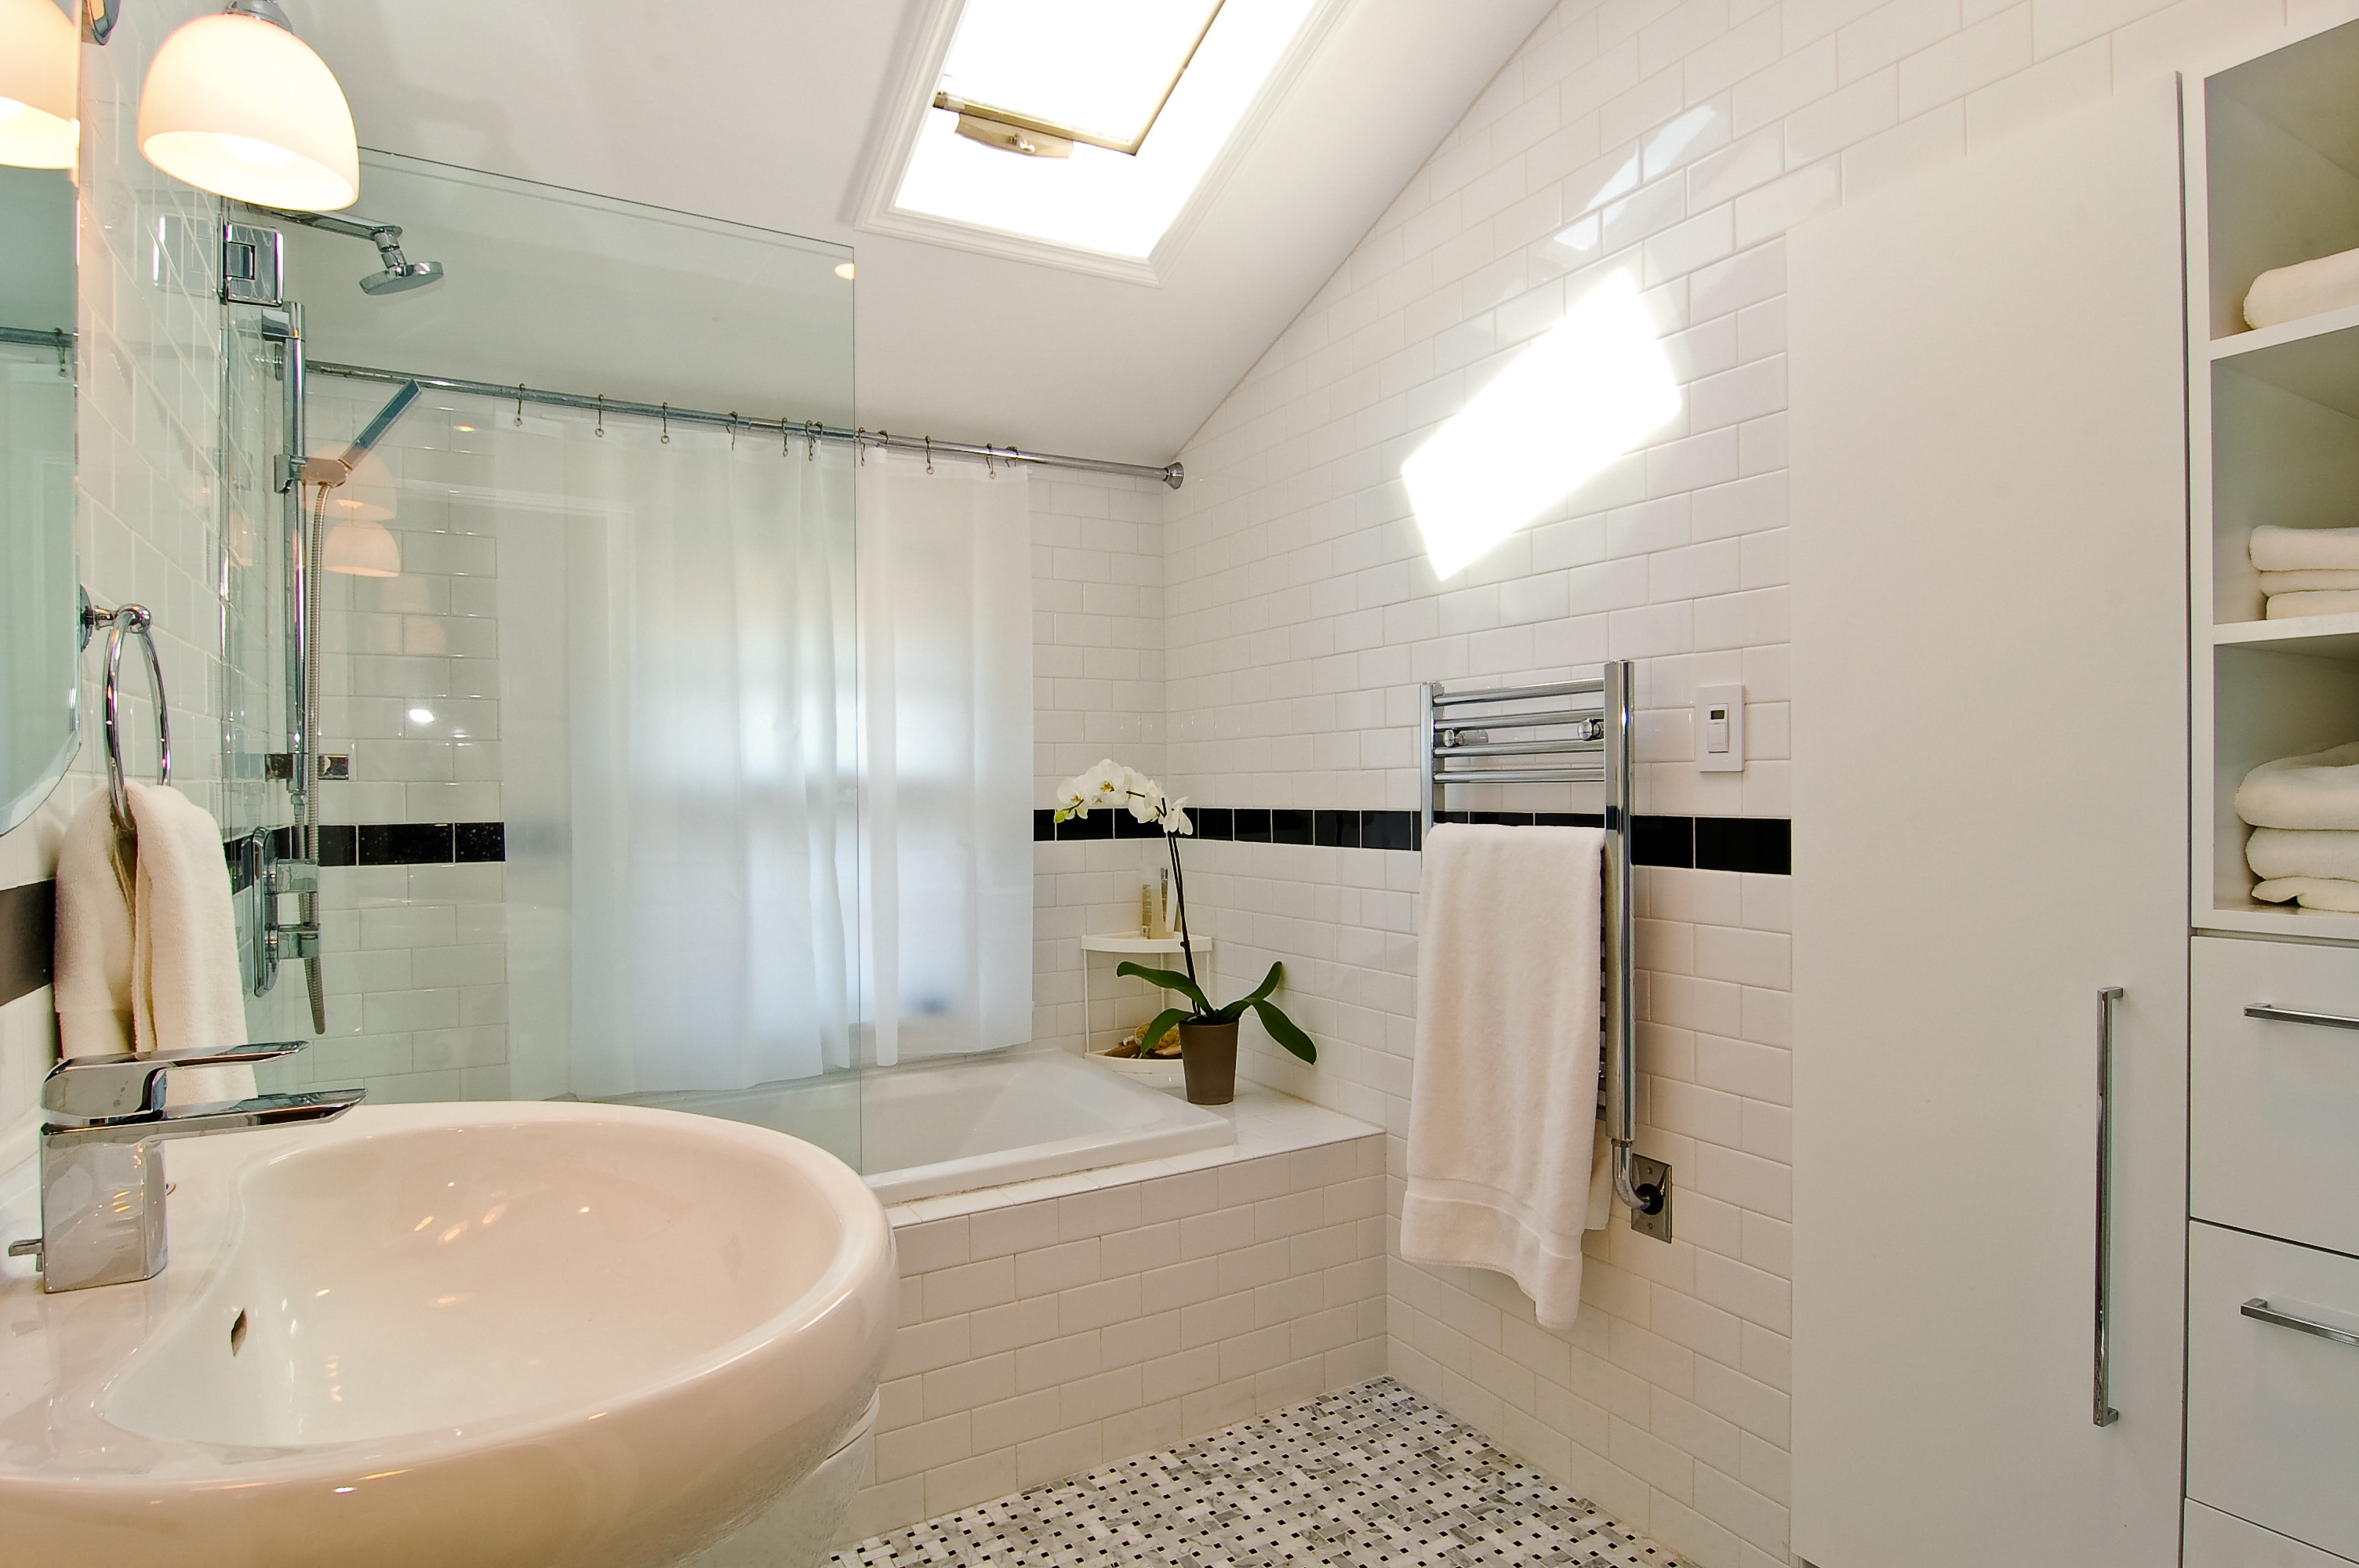 10 most popular remodeling jobs homesmsp for Most popular bathroom renovations